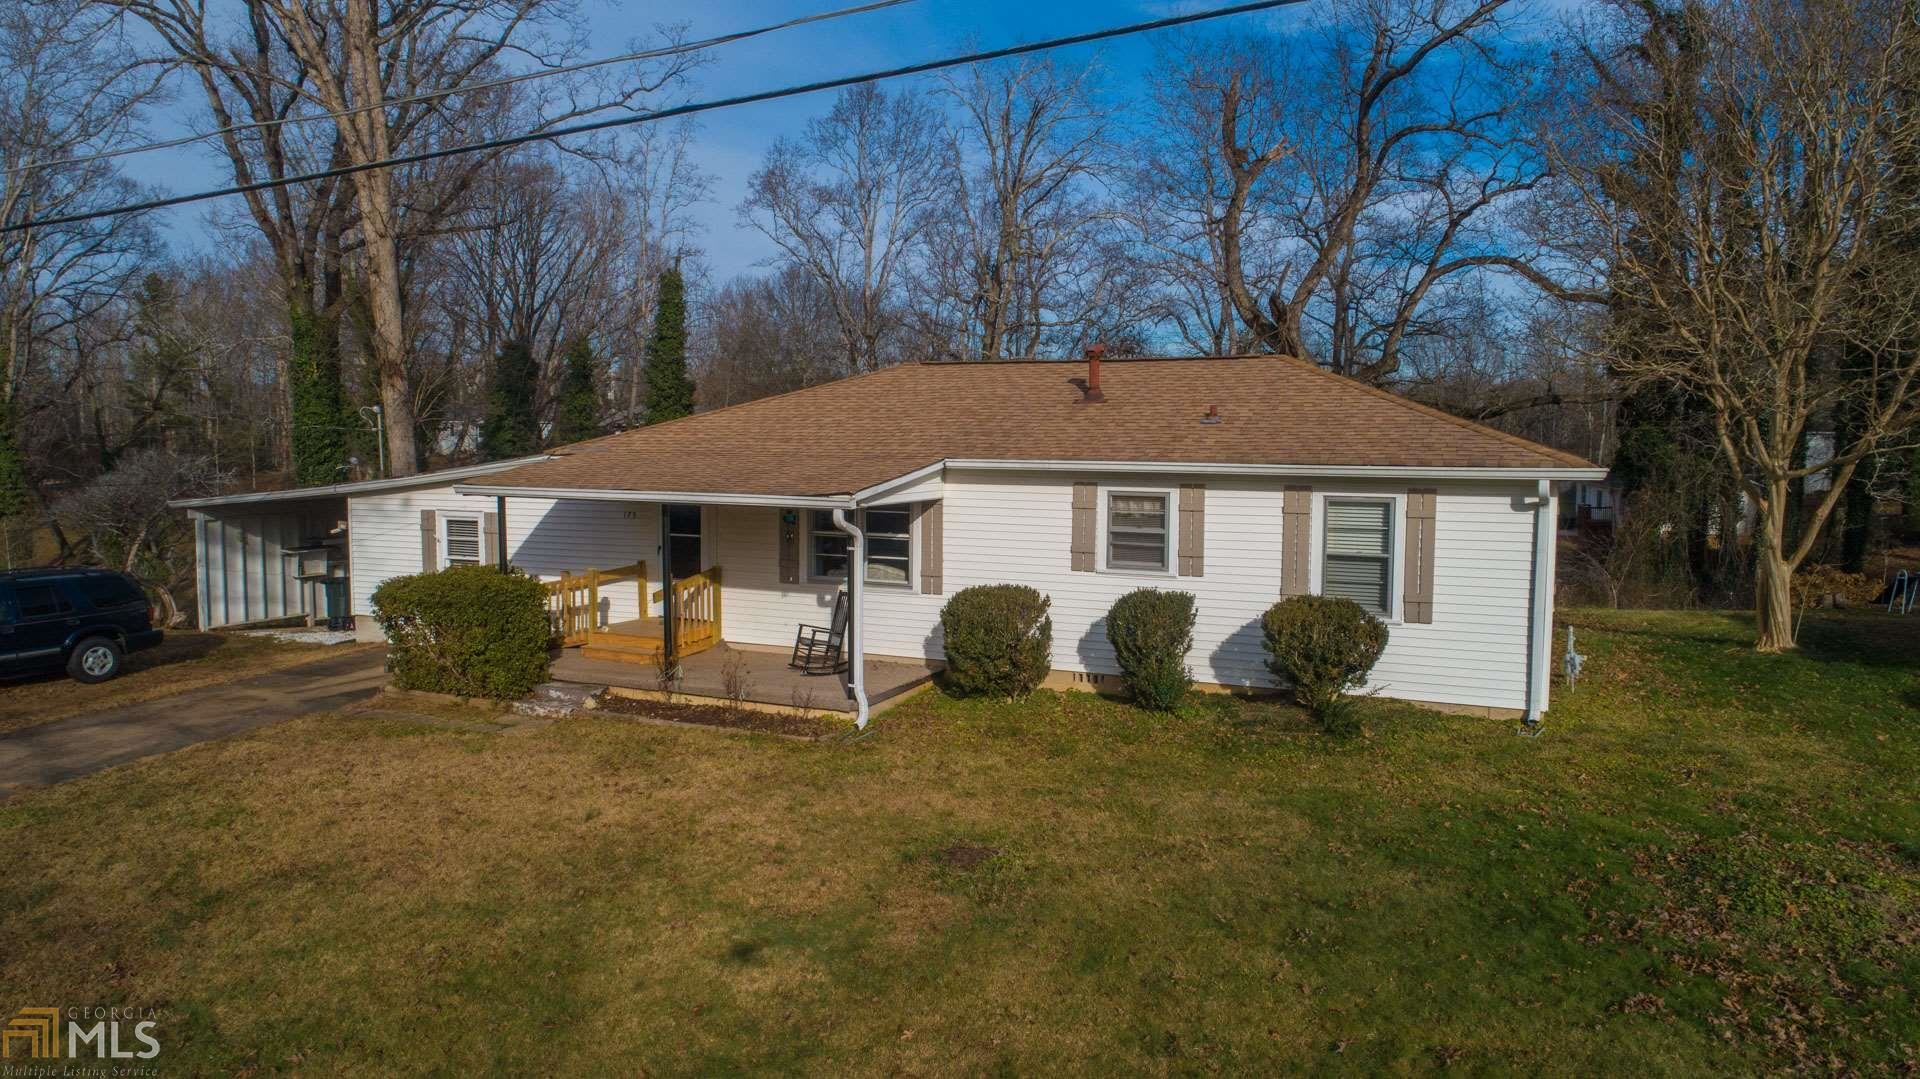 175 Rowe Street, Buford, GA 30518 - MLS#: 8913521